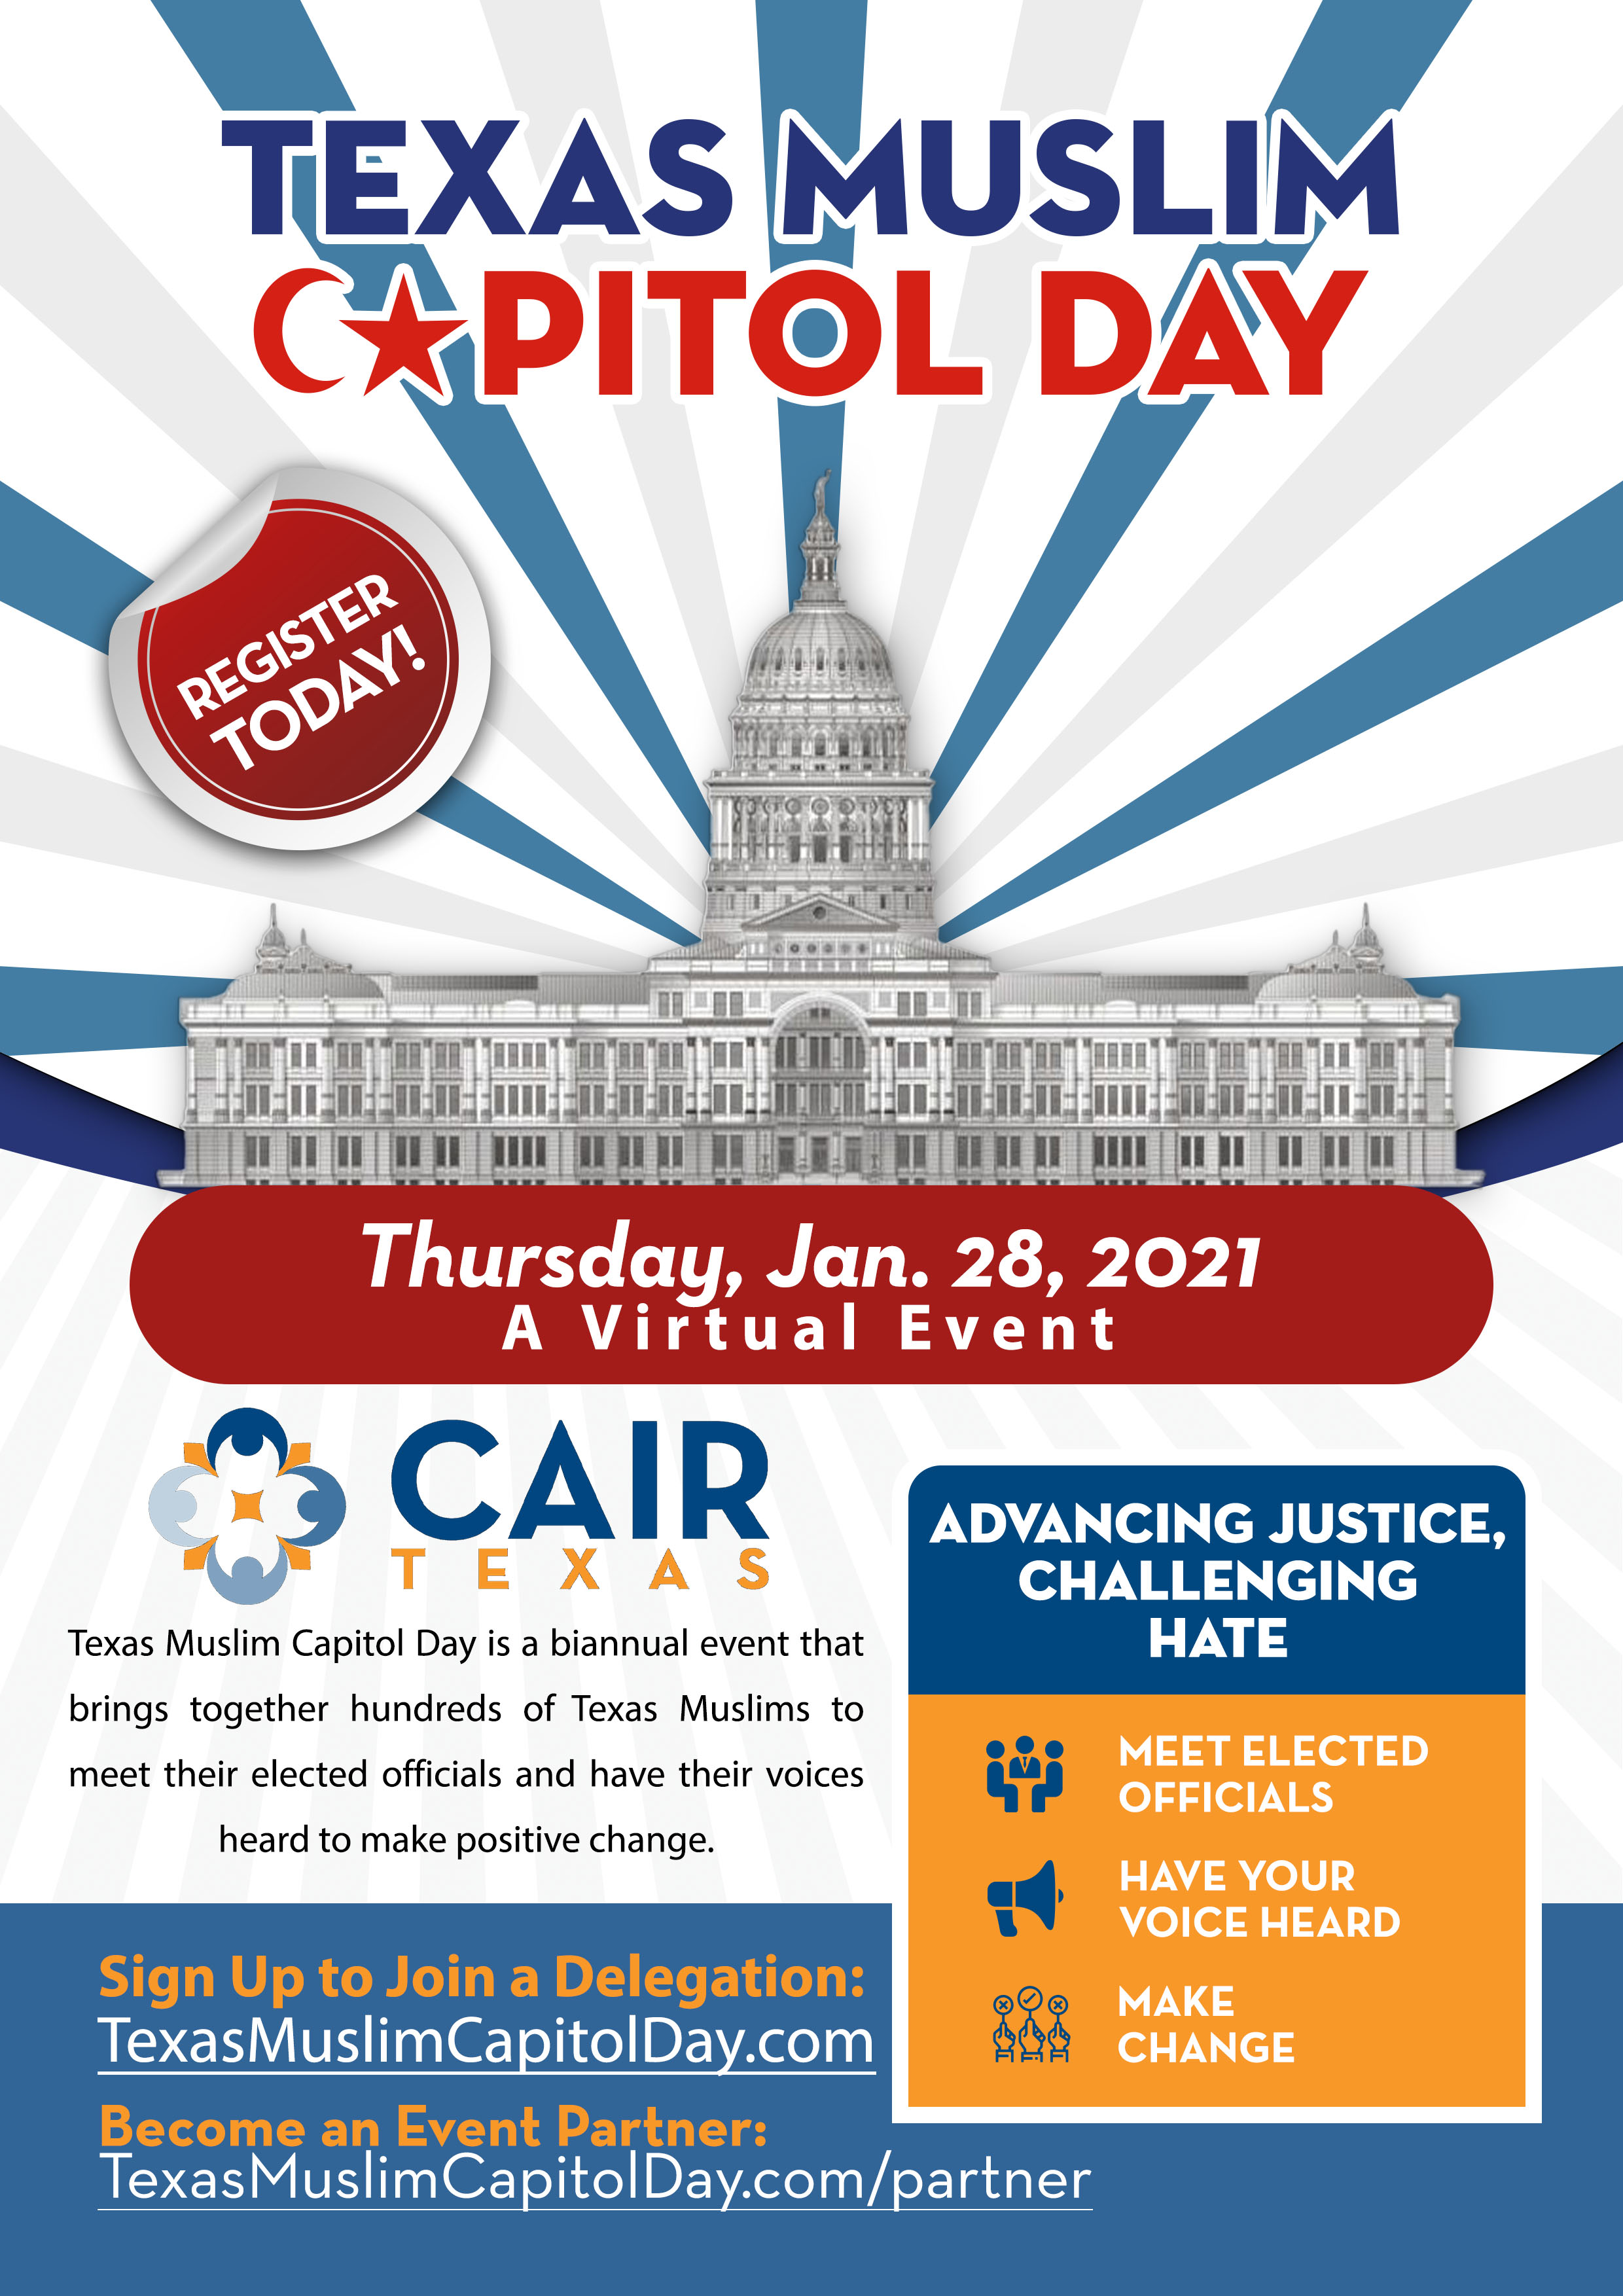 Texas Muslim Capitol Day Flyer CAIR Texas